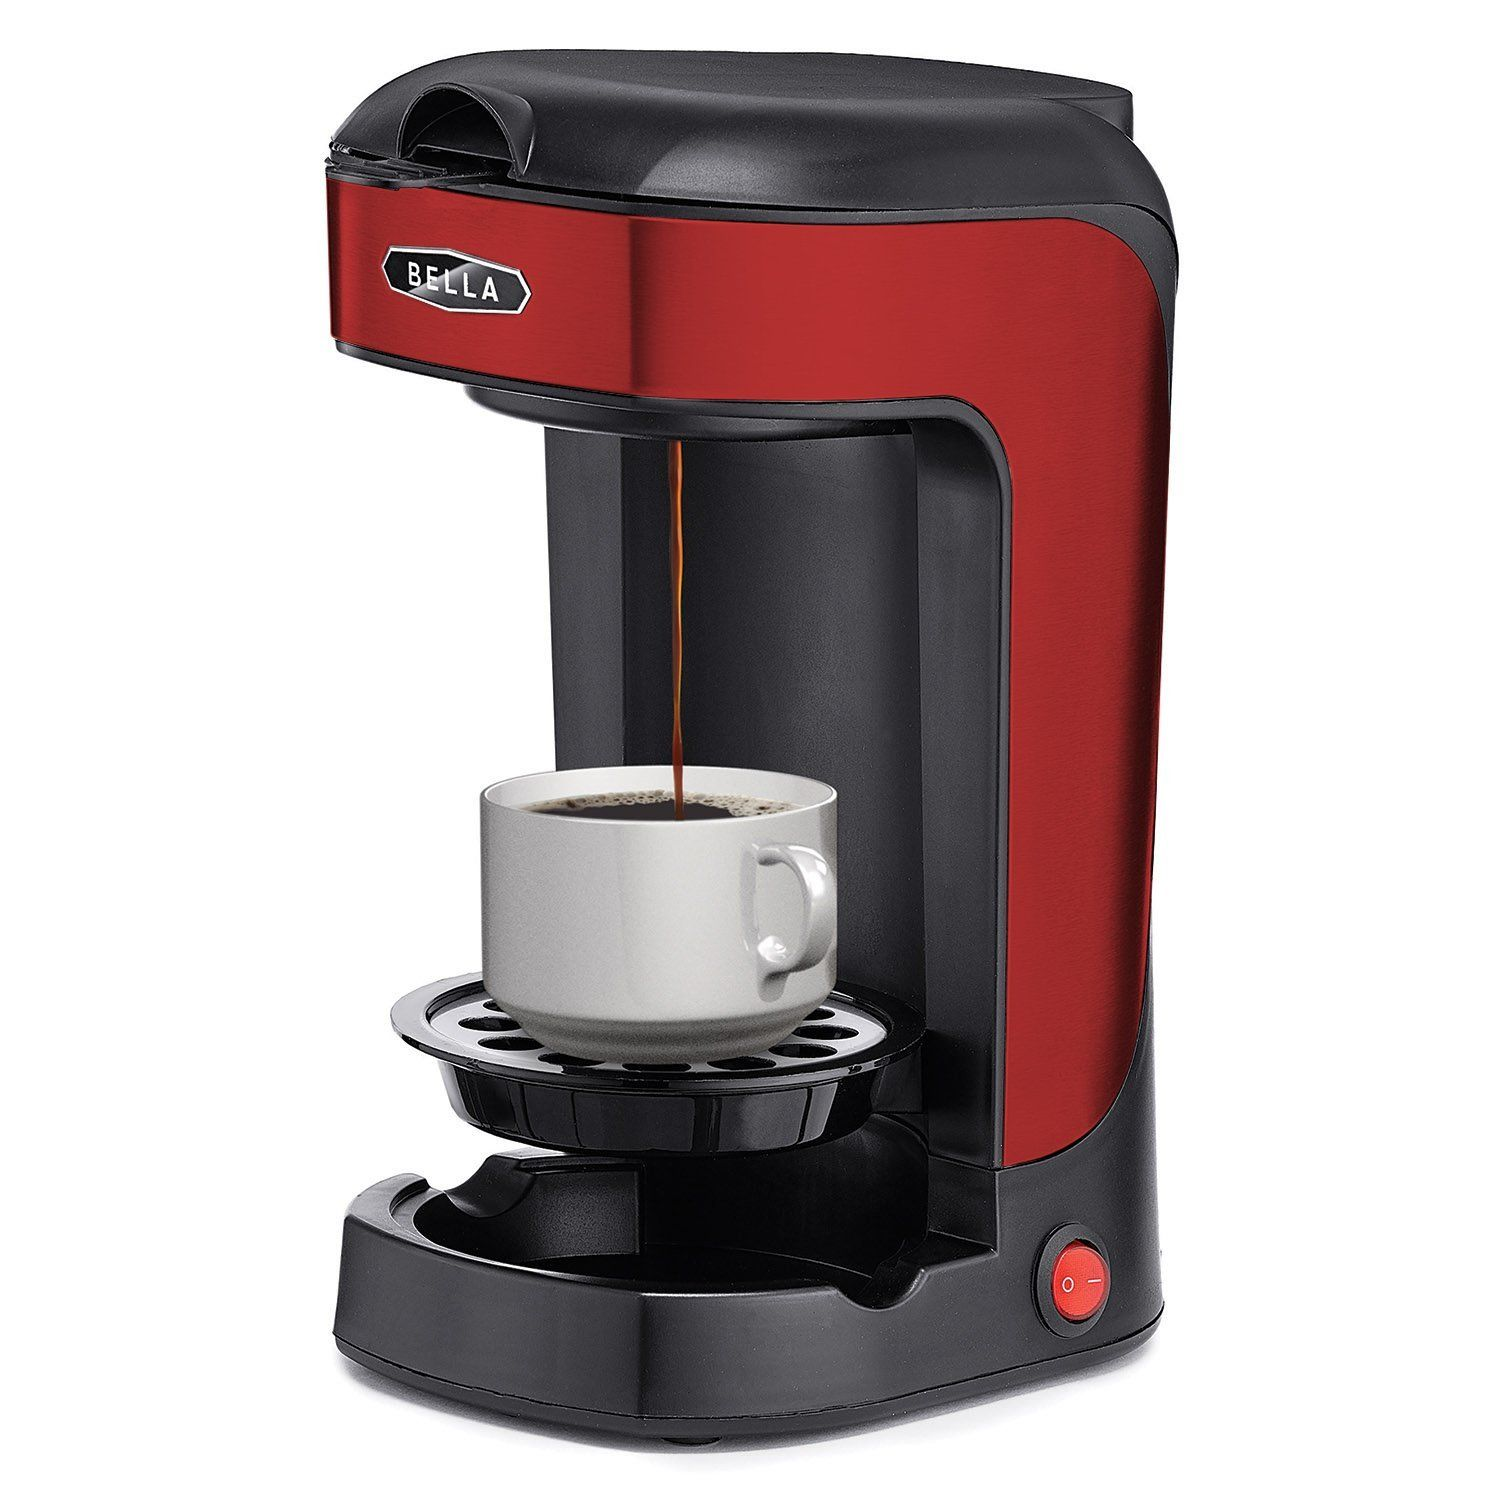 Bella One Scoop One Cup Coffee Maker Review Best Buymorecoffee Com One Cup Coffee Maker Coffee And Tea Makers Coffee Maker